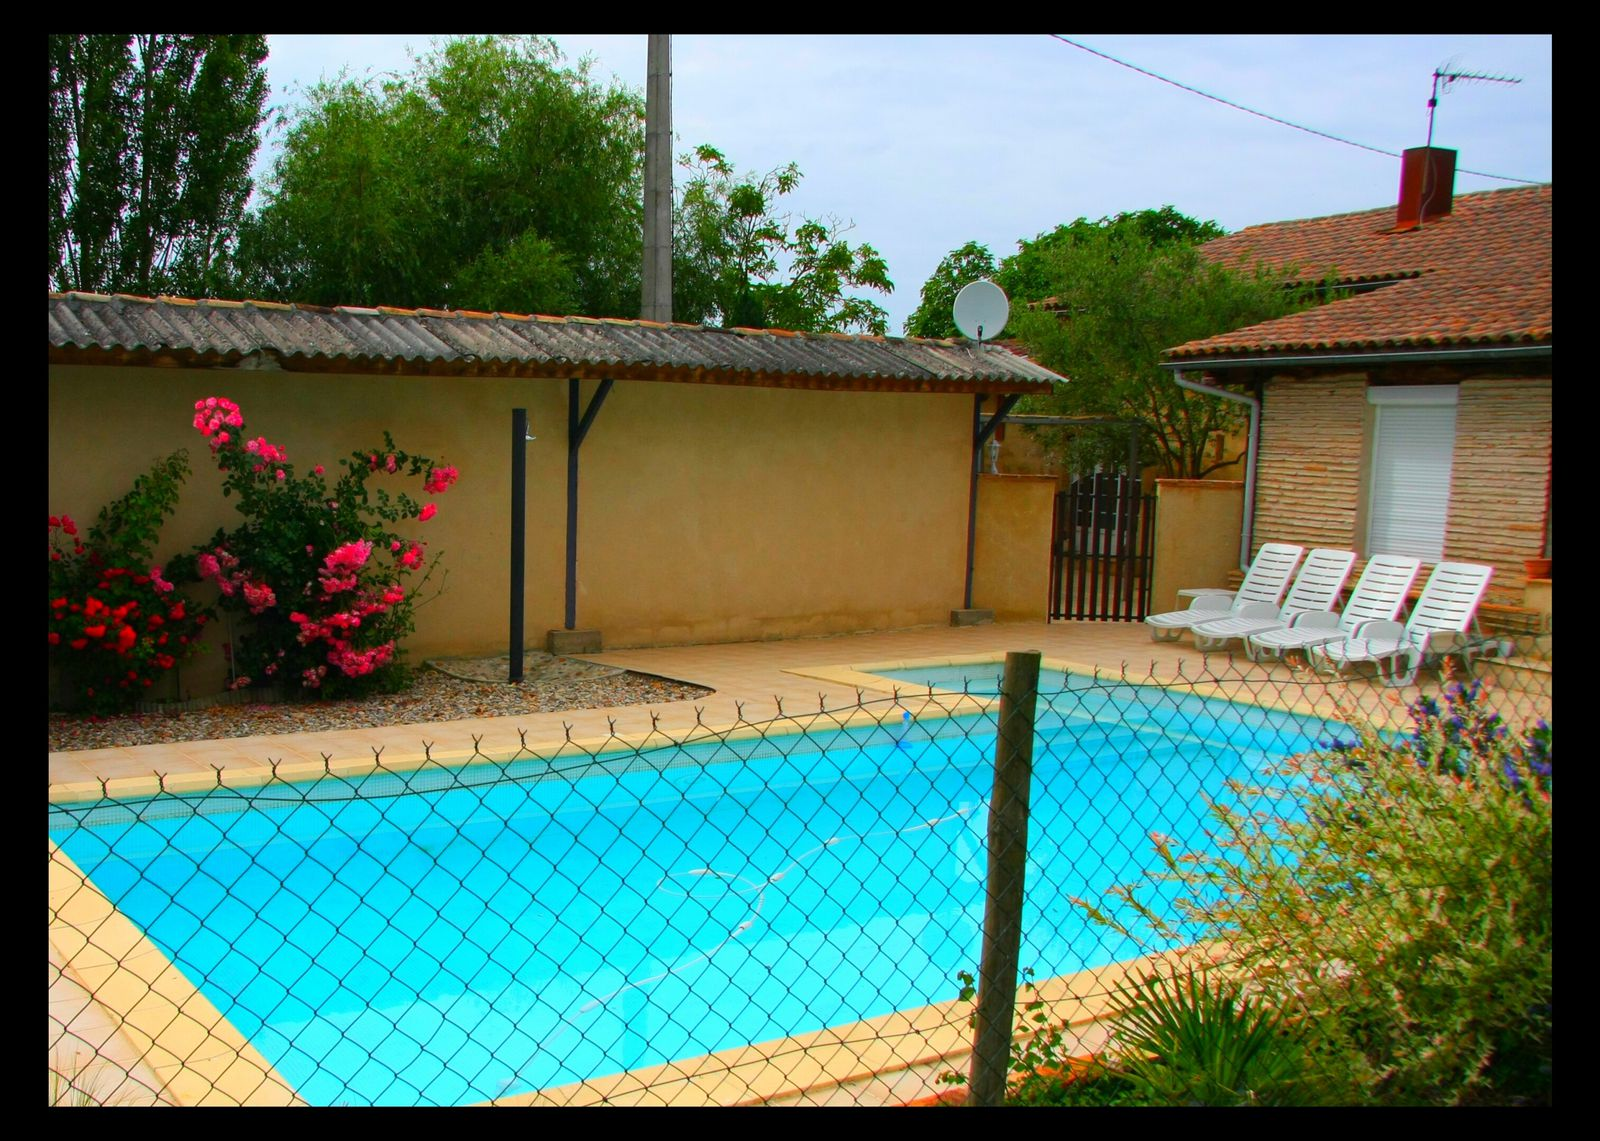 Photo maison tombeboeuf location de vacances en lot et for Location maison avec piscine lot et garonne